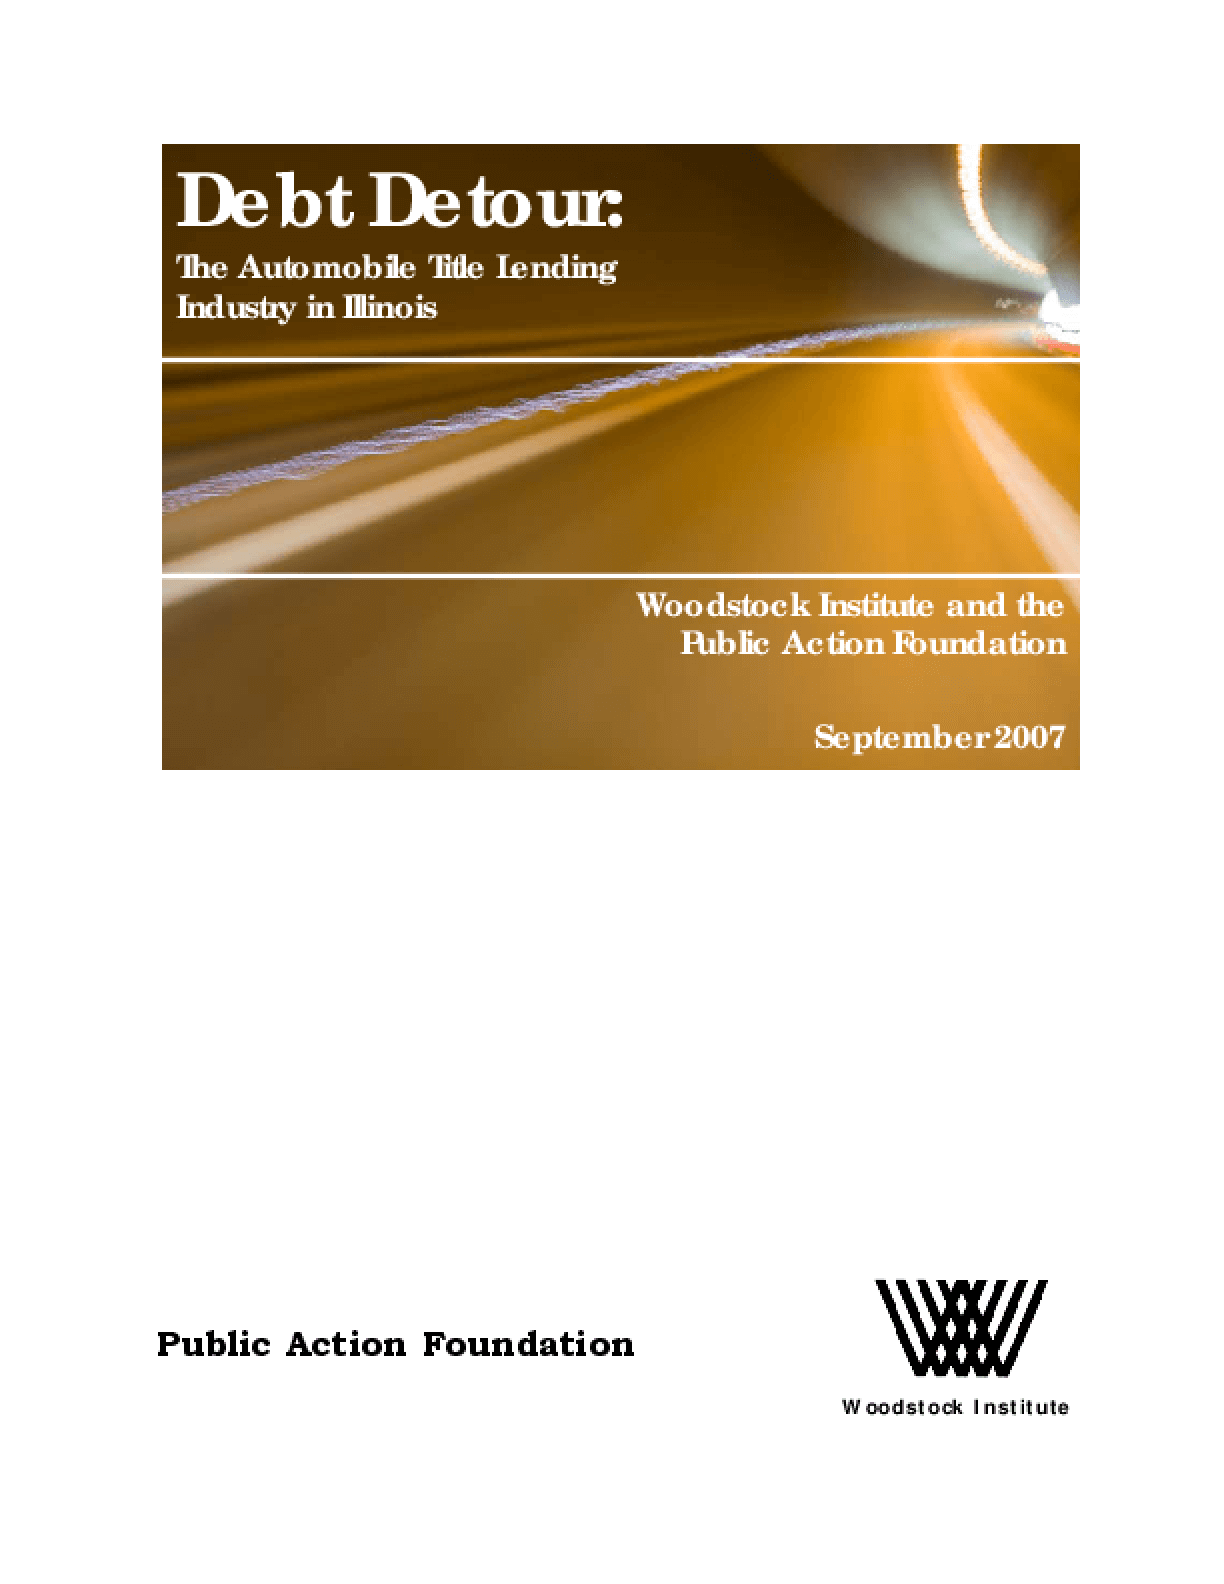 Debt Detour: The Automobile Title Loan Industry in Illinois